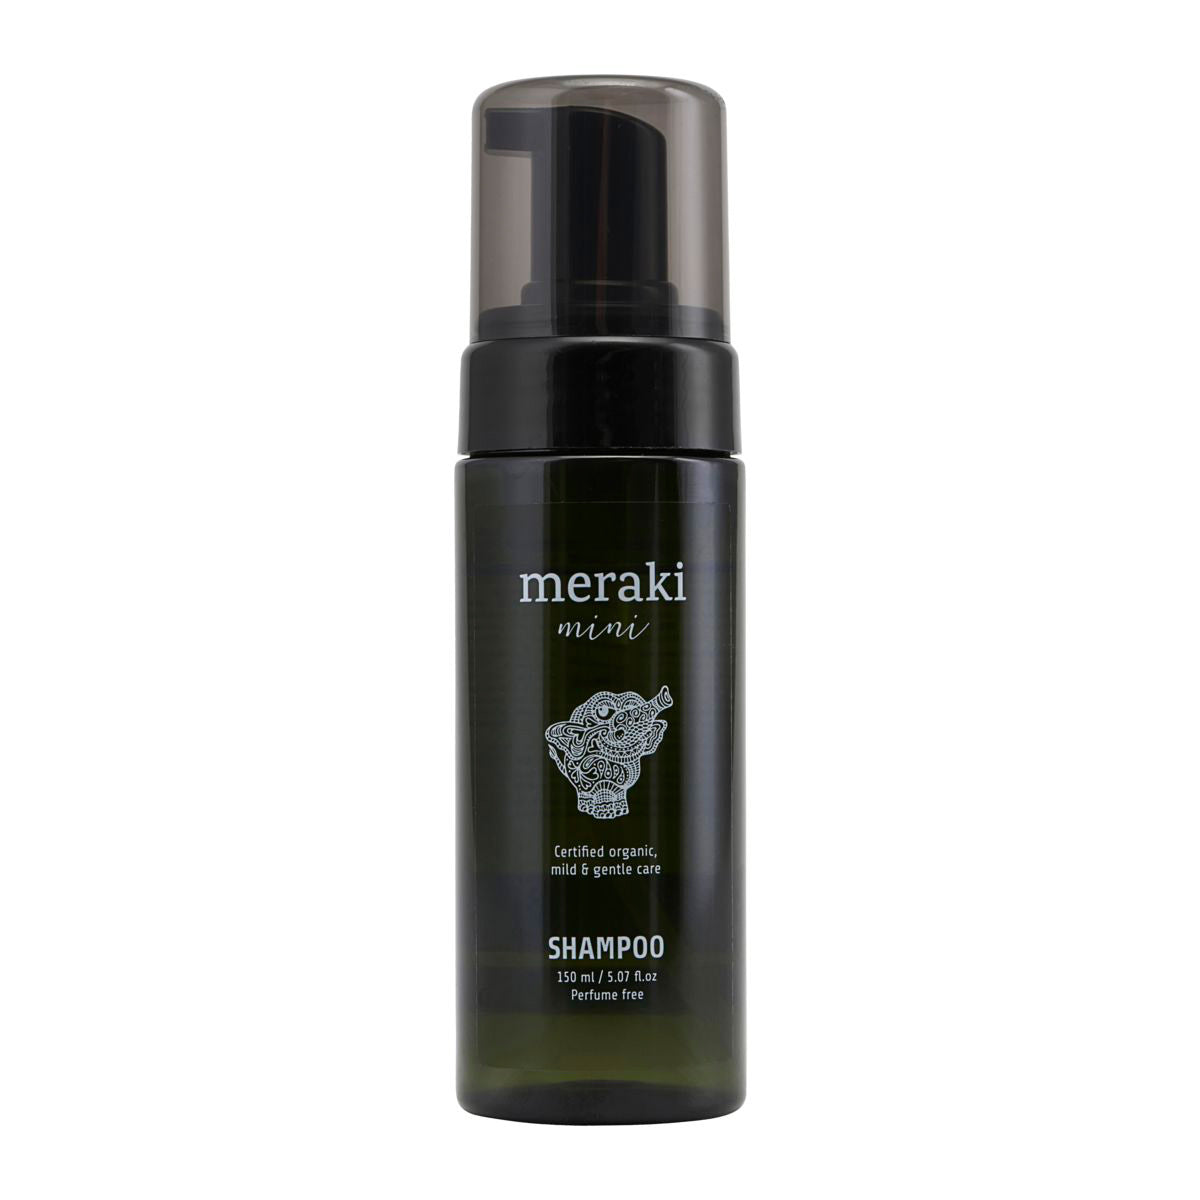 Meraki Mini - Organic Baby - Paraben Free Shampoo | Natural Skincare - Natural Beauty - Danish Skincare - Clean Beauty - Organic Skincare - Colourant Free - Gentle Cleansing | Healthy Living | Nordic Living | Slow Living | Meraki Mini Shampoo